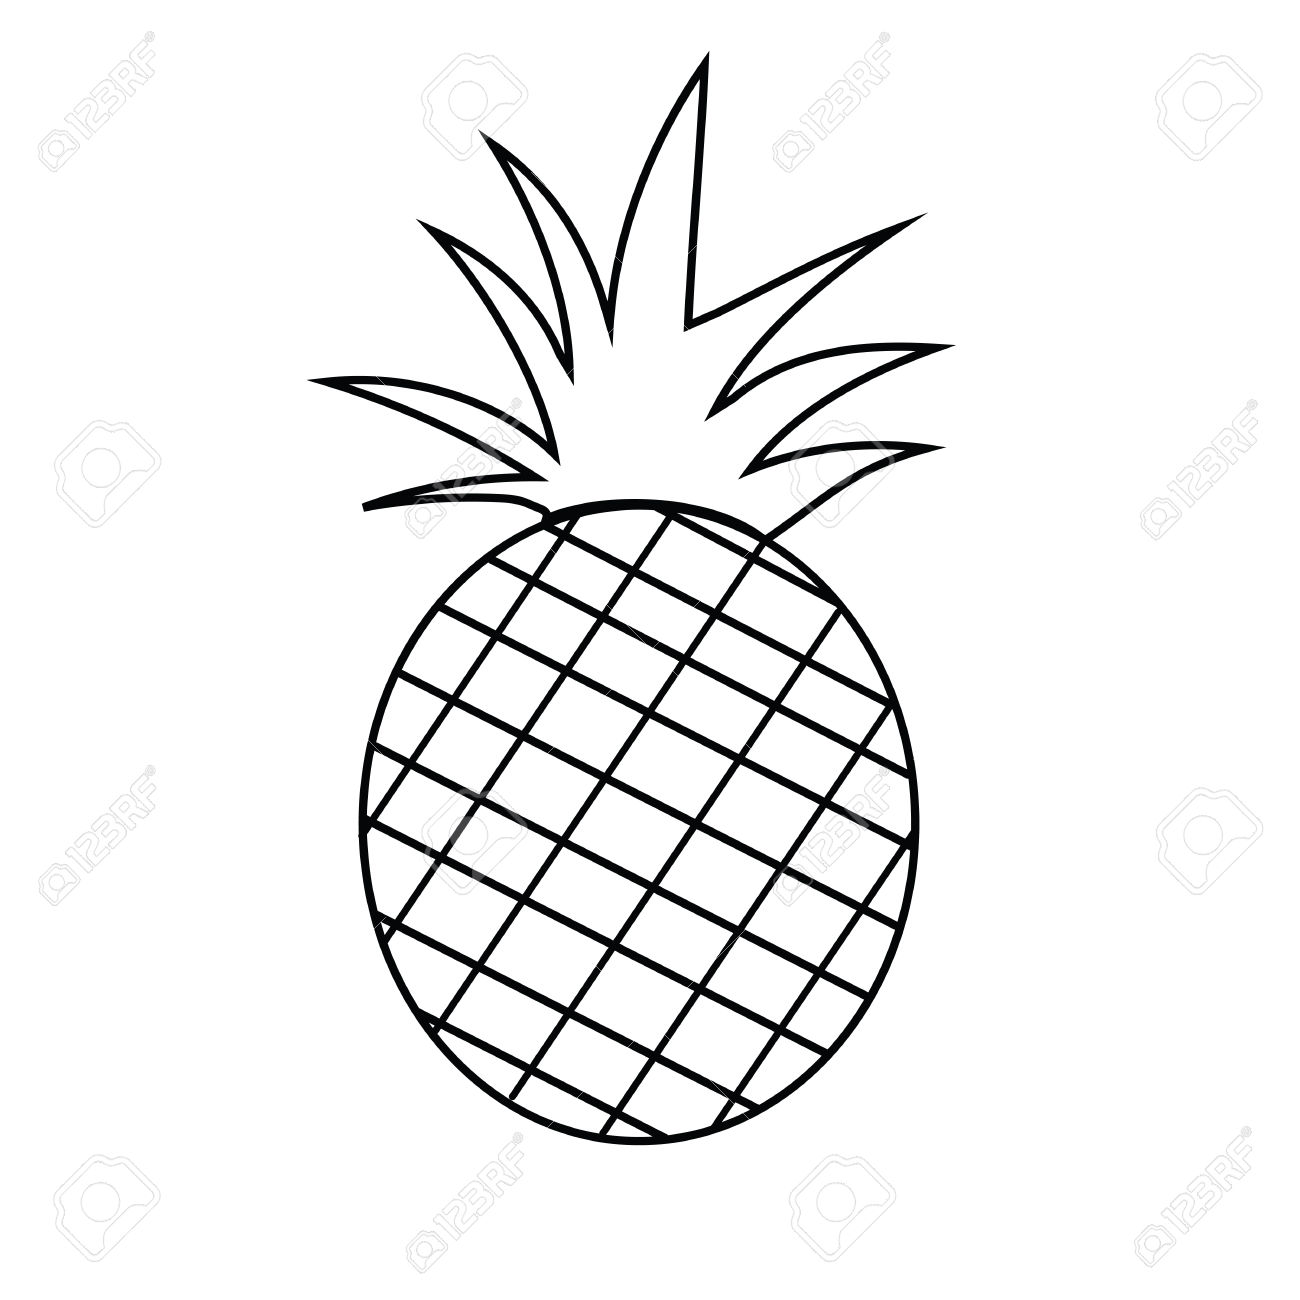 3663 Pineapple free clipart.